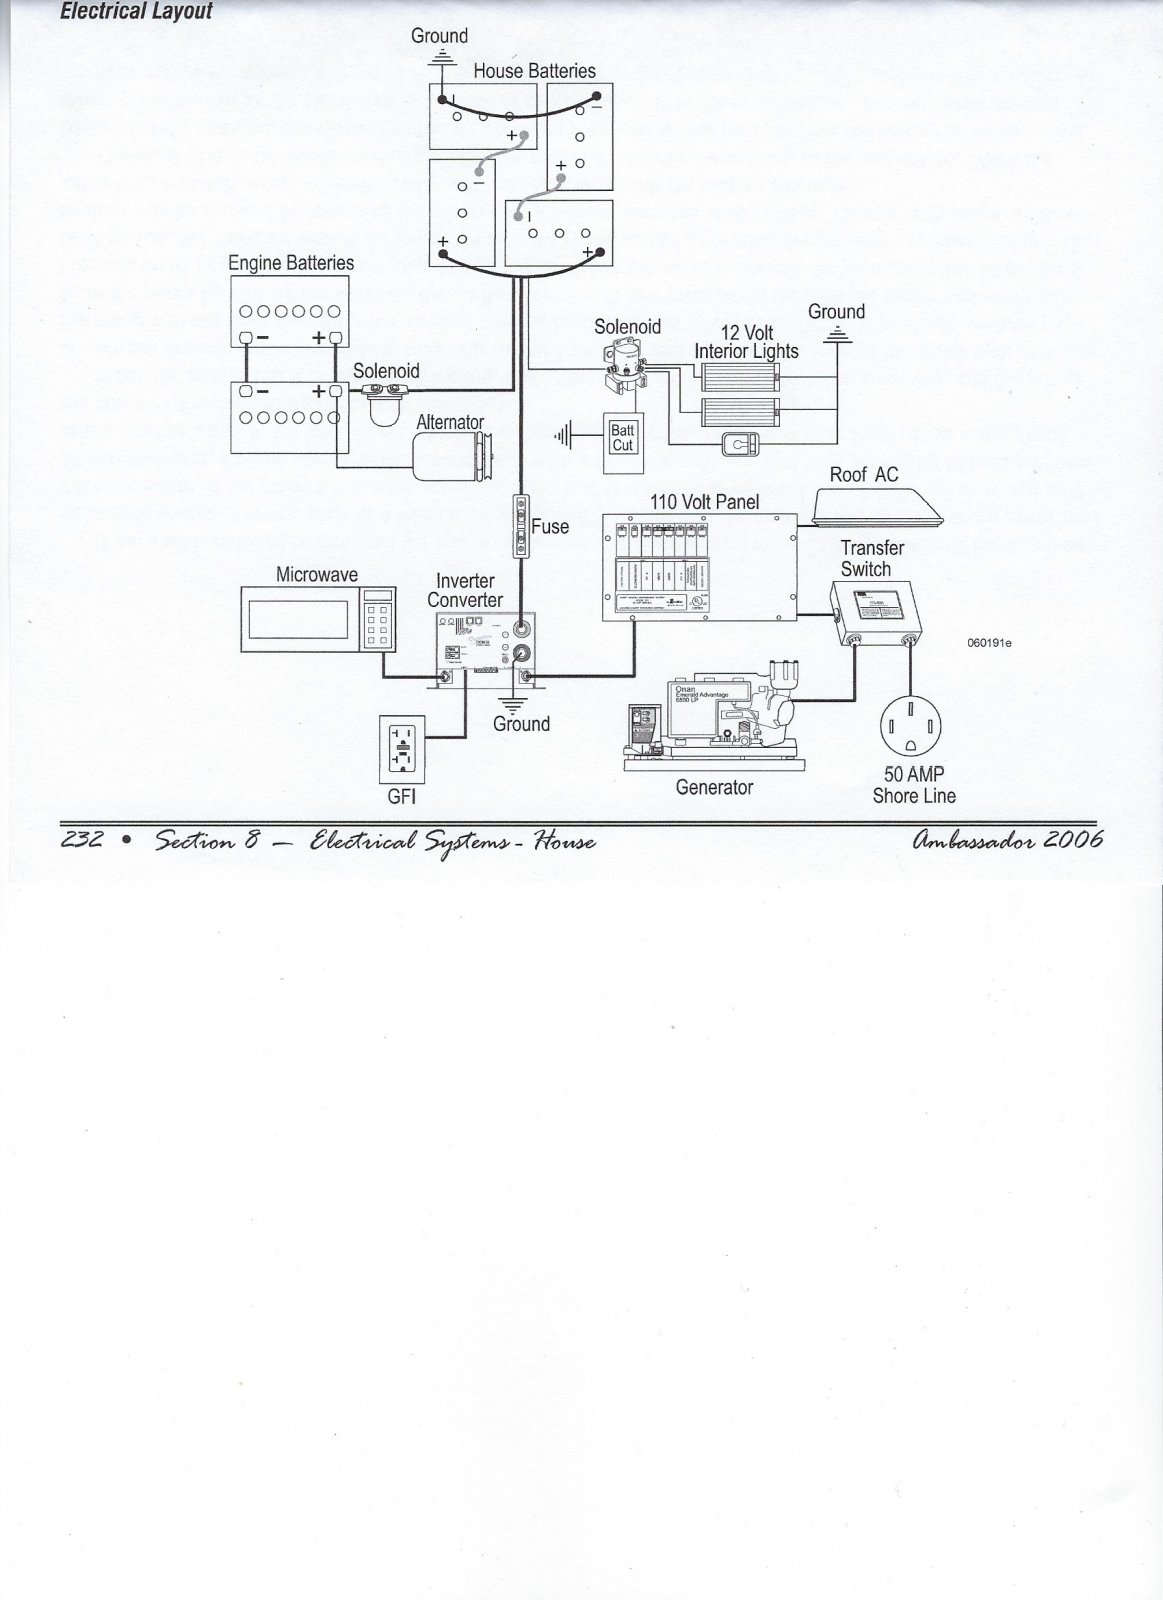 house battery wiring for 2003 holiday rambler ambassador Holiday Rambler RV Wiring Diagram Holiday Rambler RV Wiring Diagram